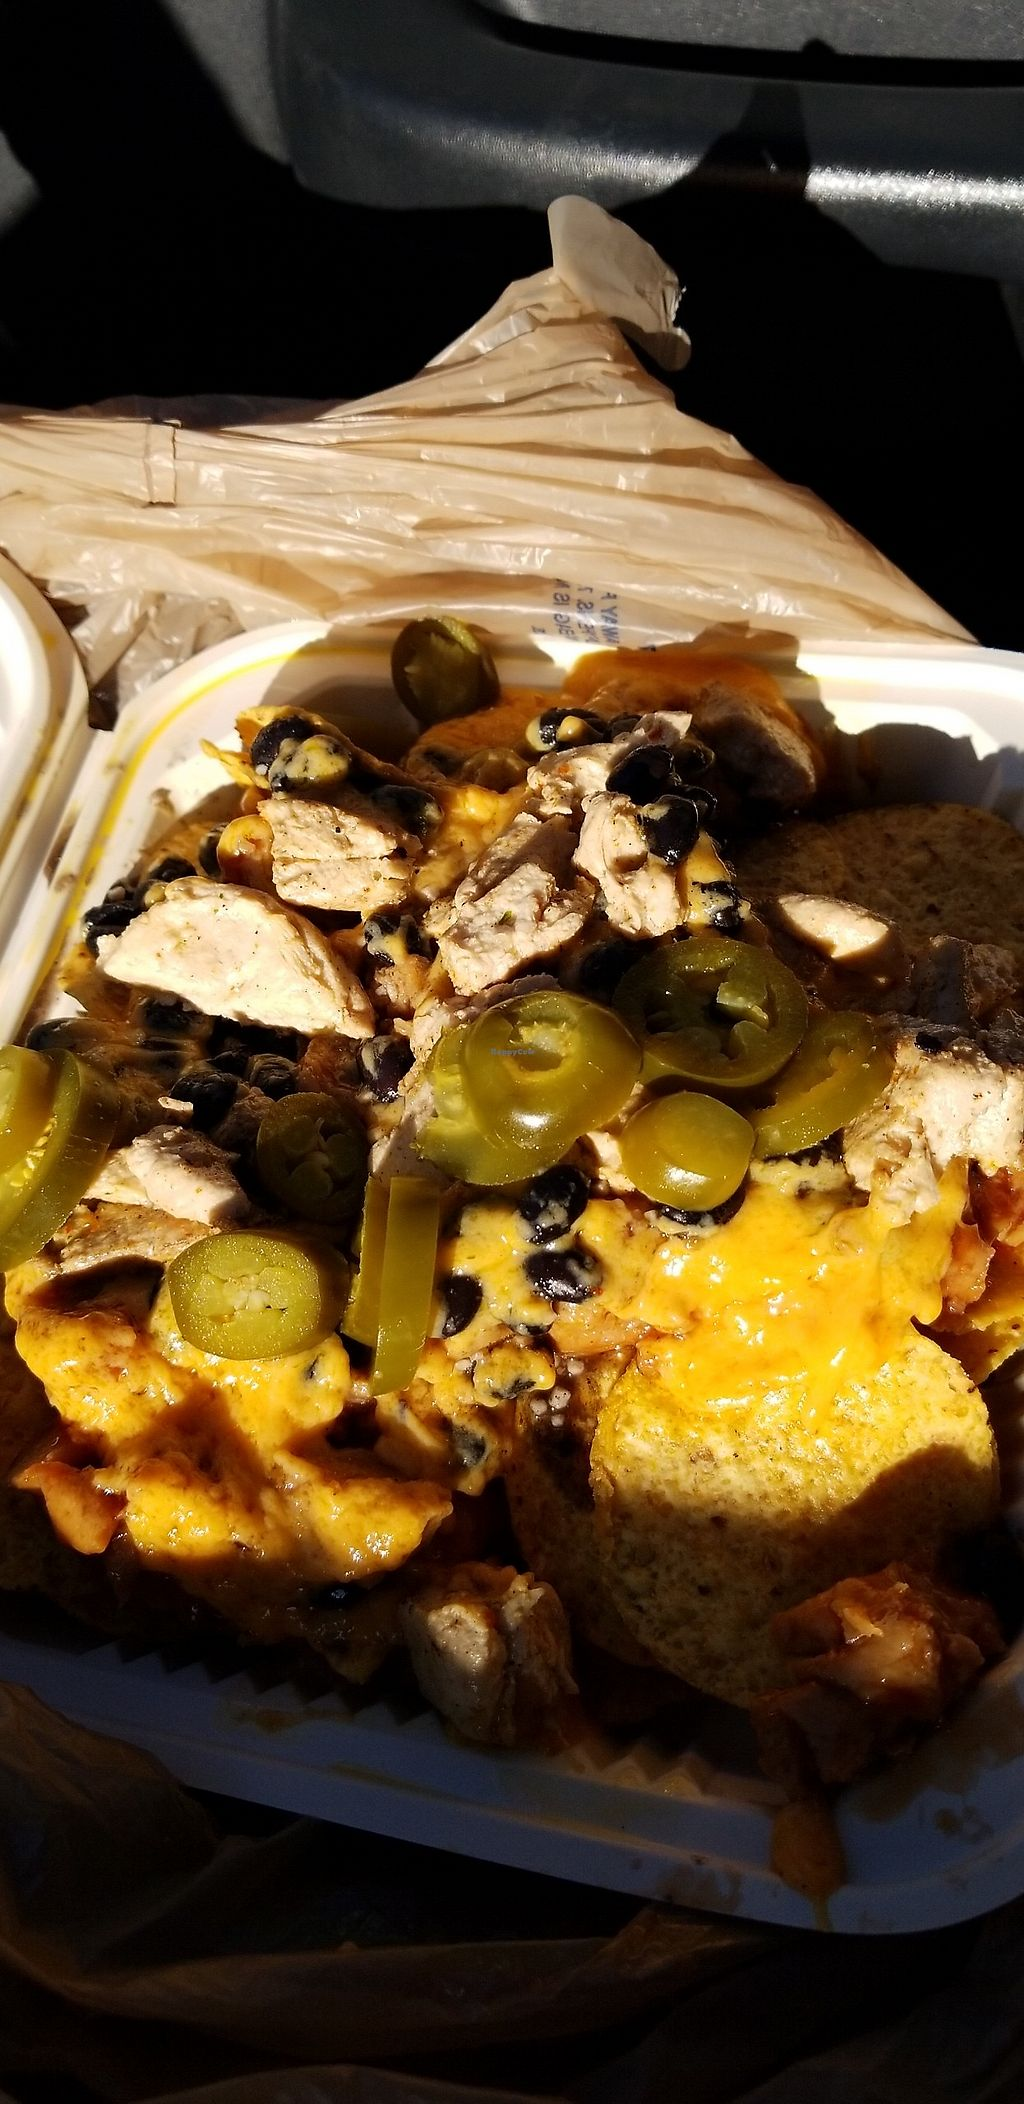 """Photo of Imagine Vegan Cafe  by <a href=""""/members/profile/Beth2rich"""">Beth2rich</a> <br/>Vegan bbq nachos and we added faux chicken and black beans :) <br/> May 7, 2018  - <a href='/contact/abuse/image/26621/396643'>Report</a>"""